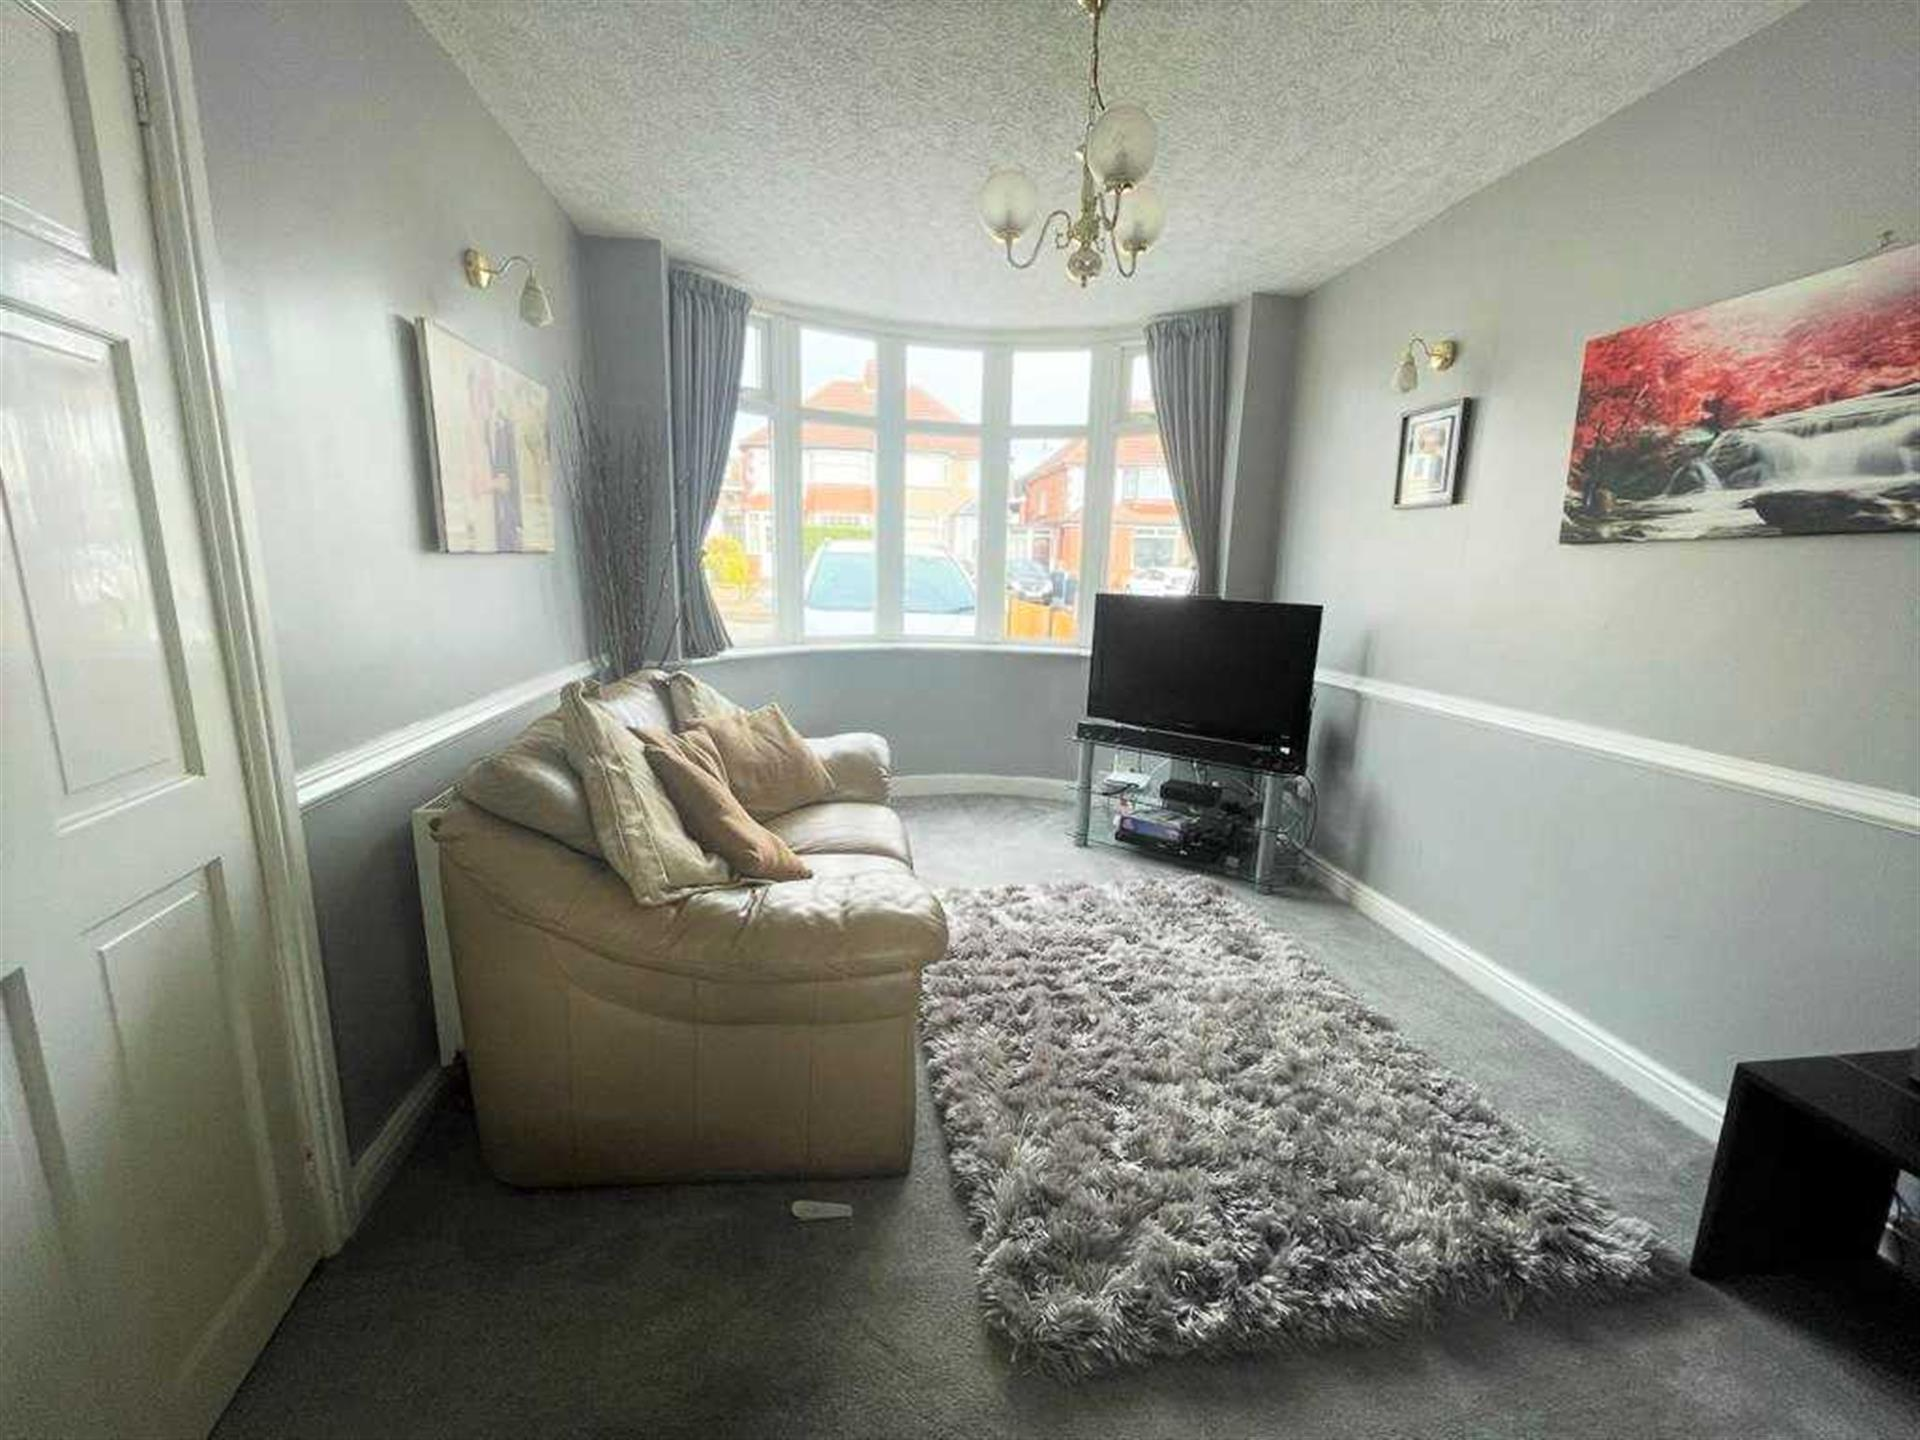 3 Bedroom Semi-detached House For Sale - Image 2